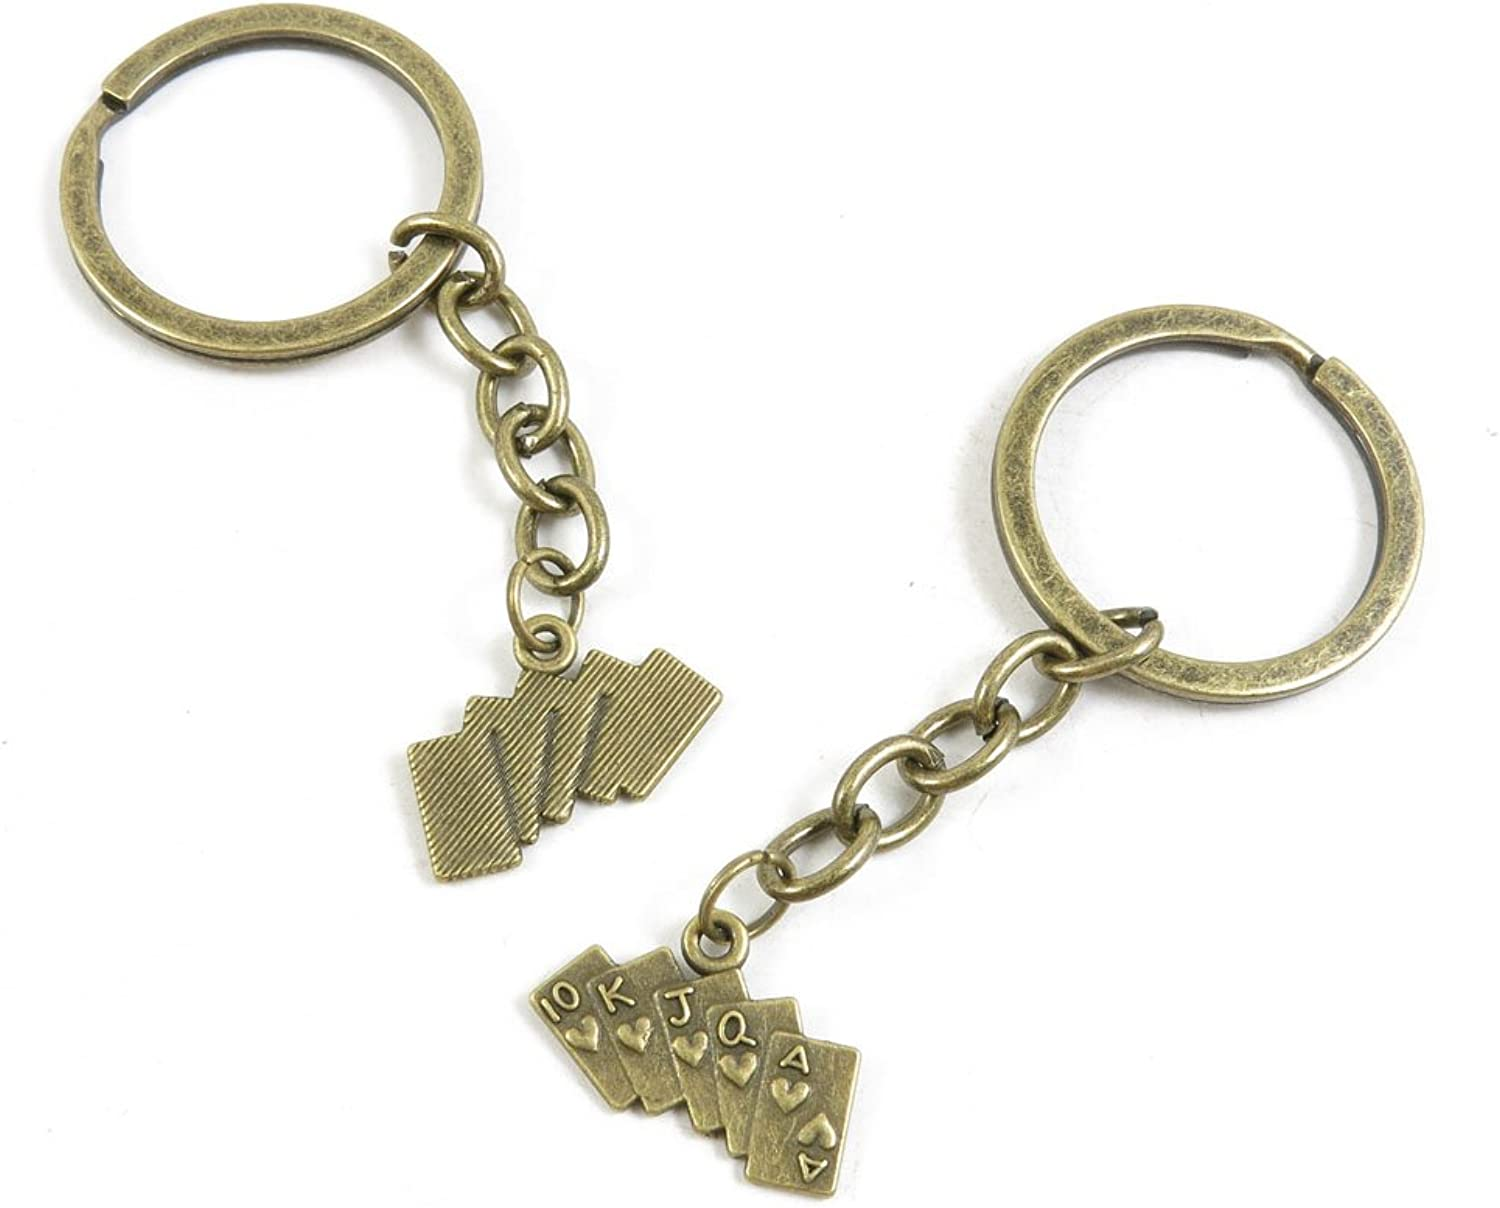 220 Pieces Fashion Jewelry Keyring Keychain Door Car Key Tag Ring Chain Supplier Supply Wholesale Bulk Lots S3VT1 Poker Straight Flush